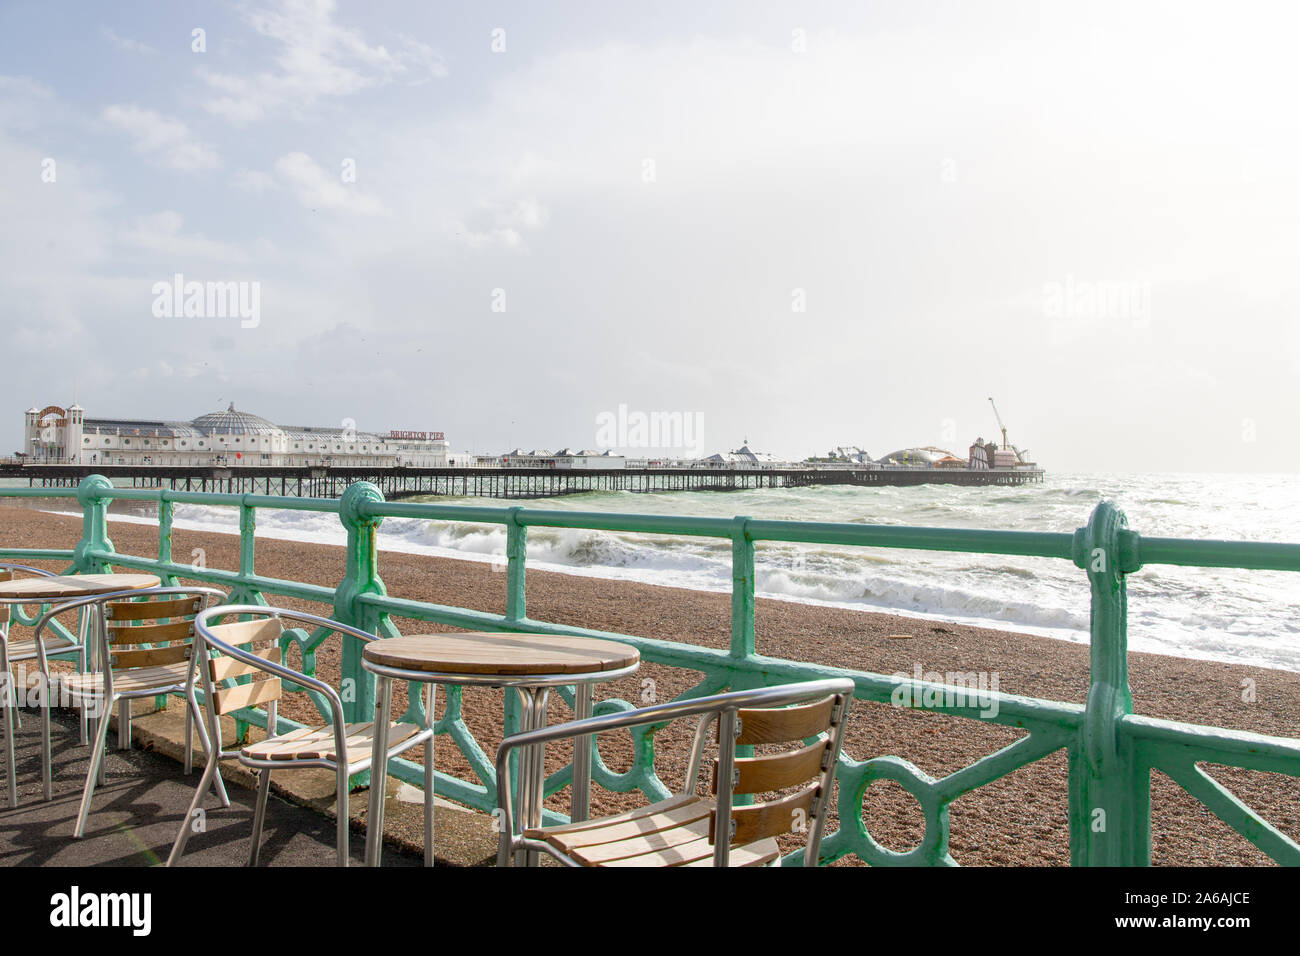 View of the Brighton palace  pier from a coffee shop terrace with chairs and tables Stock Photo